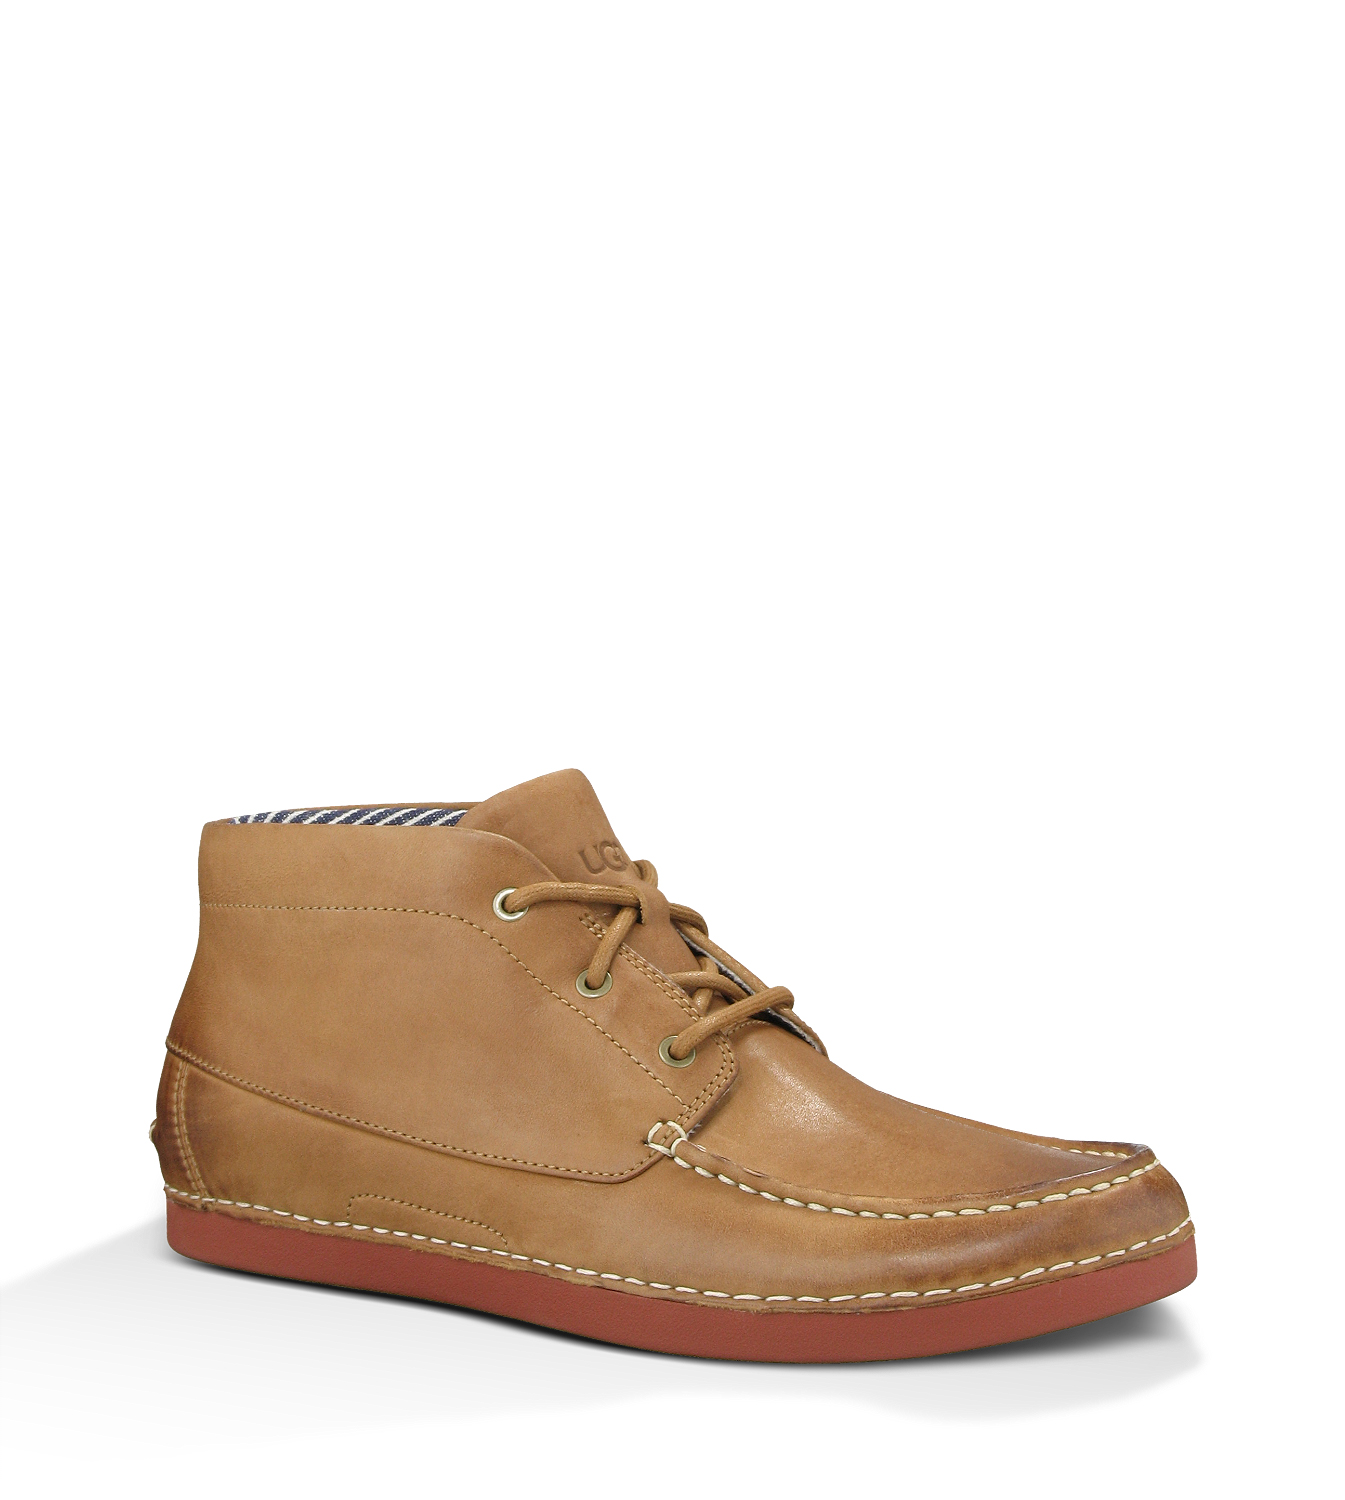 1000726 CHE 2 UGG for Men Introduces the Kaldwell Chukka for Spring 2013